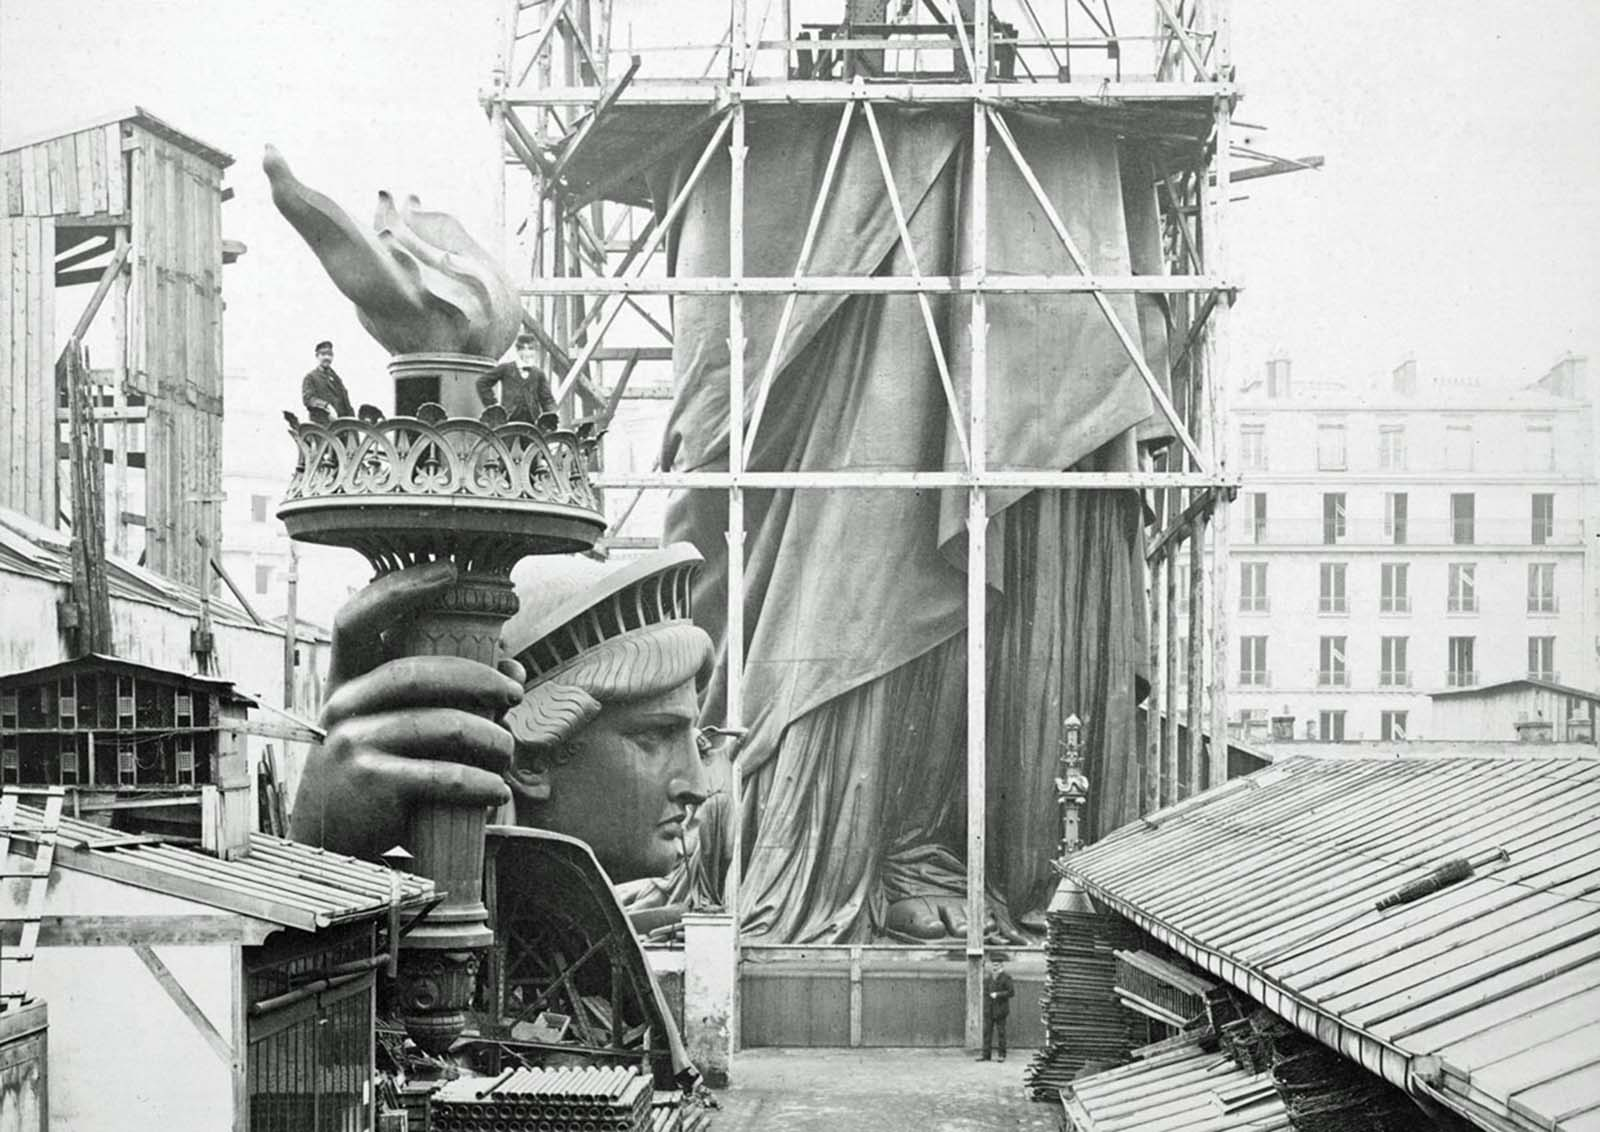 Assemblage of the Statue of Liberty in Paris, showing the bottom half of the statue under scaffolding, with the head and torch at its feet, photographed in 1883.